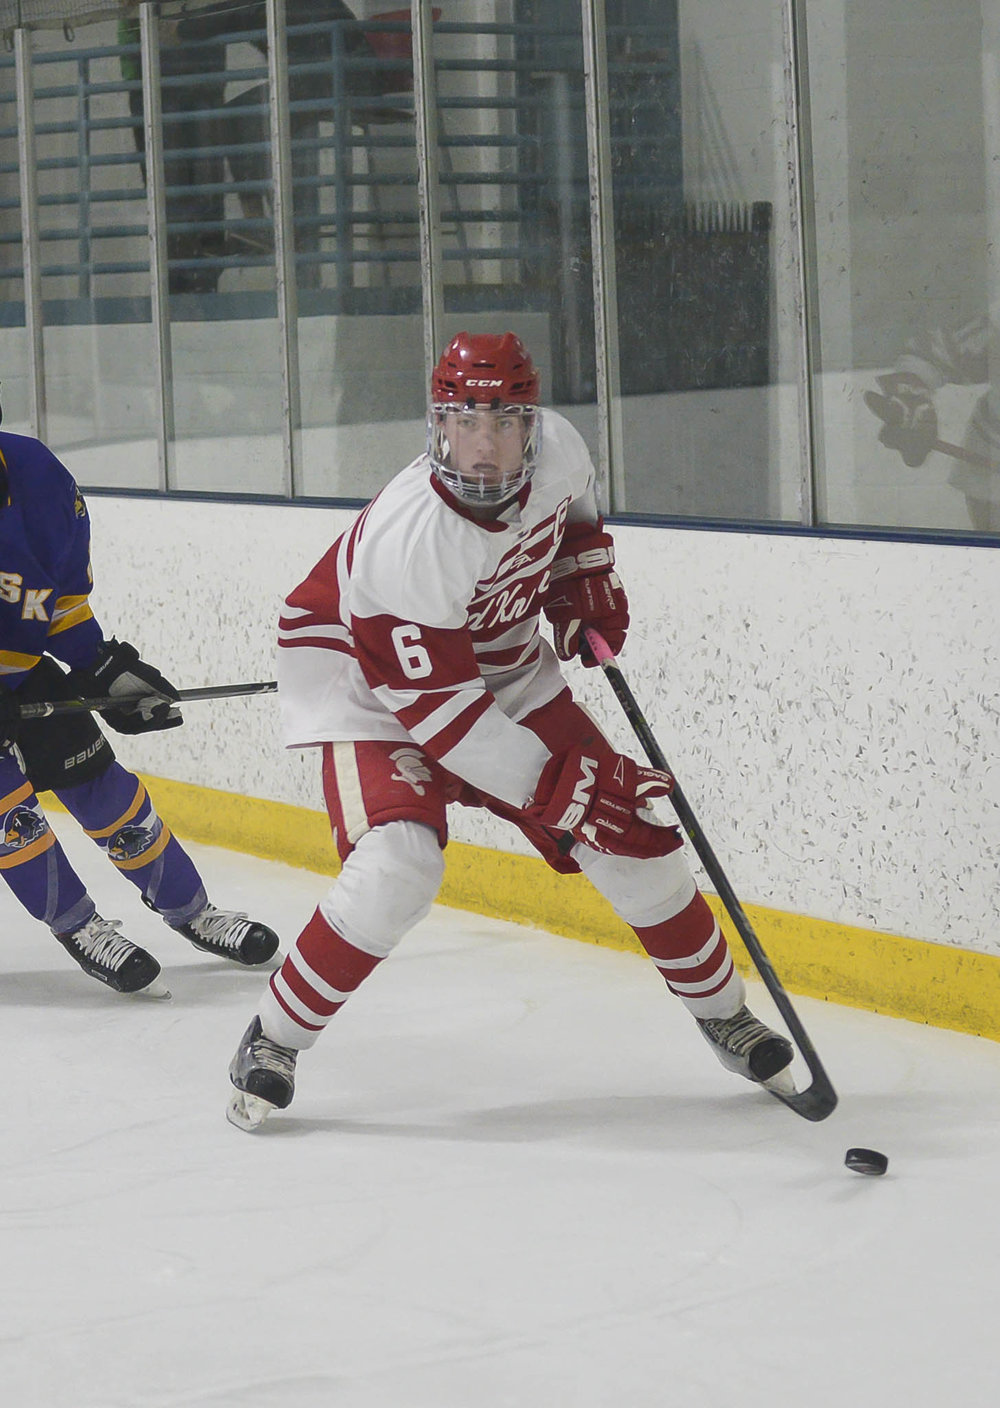 Captain Nate handling the puck at a BSM Boys' Hockey home game vs CHaska Hawks. Photo by Monda Goette Photography